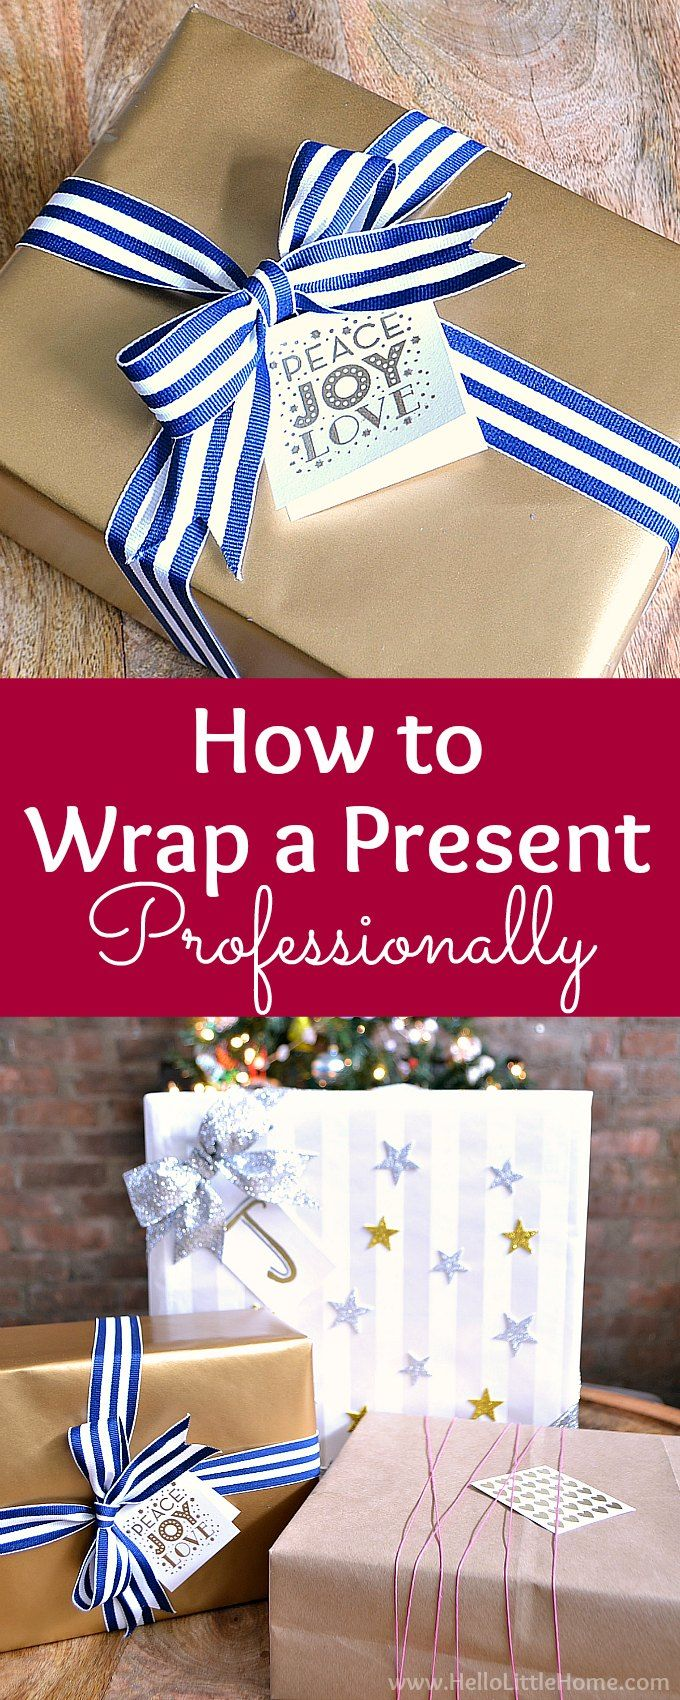 Diy Gifts Ideas How To Wrap A Present Professionally